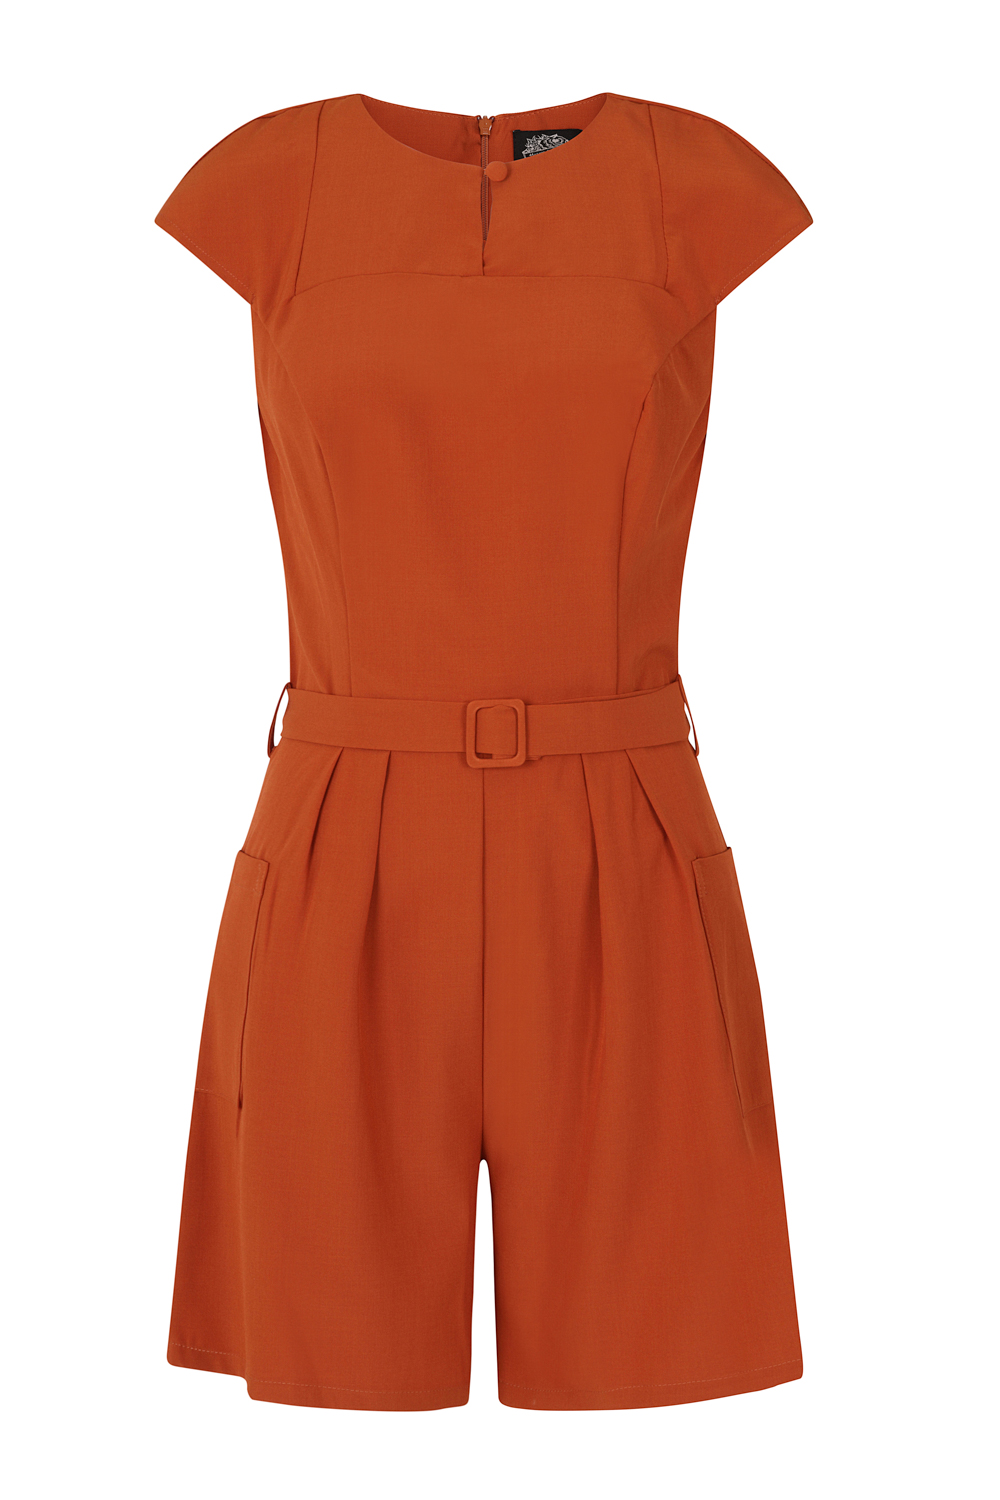 Betty Brown Playsuit